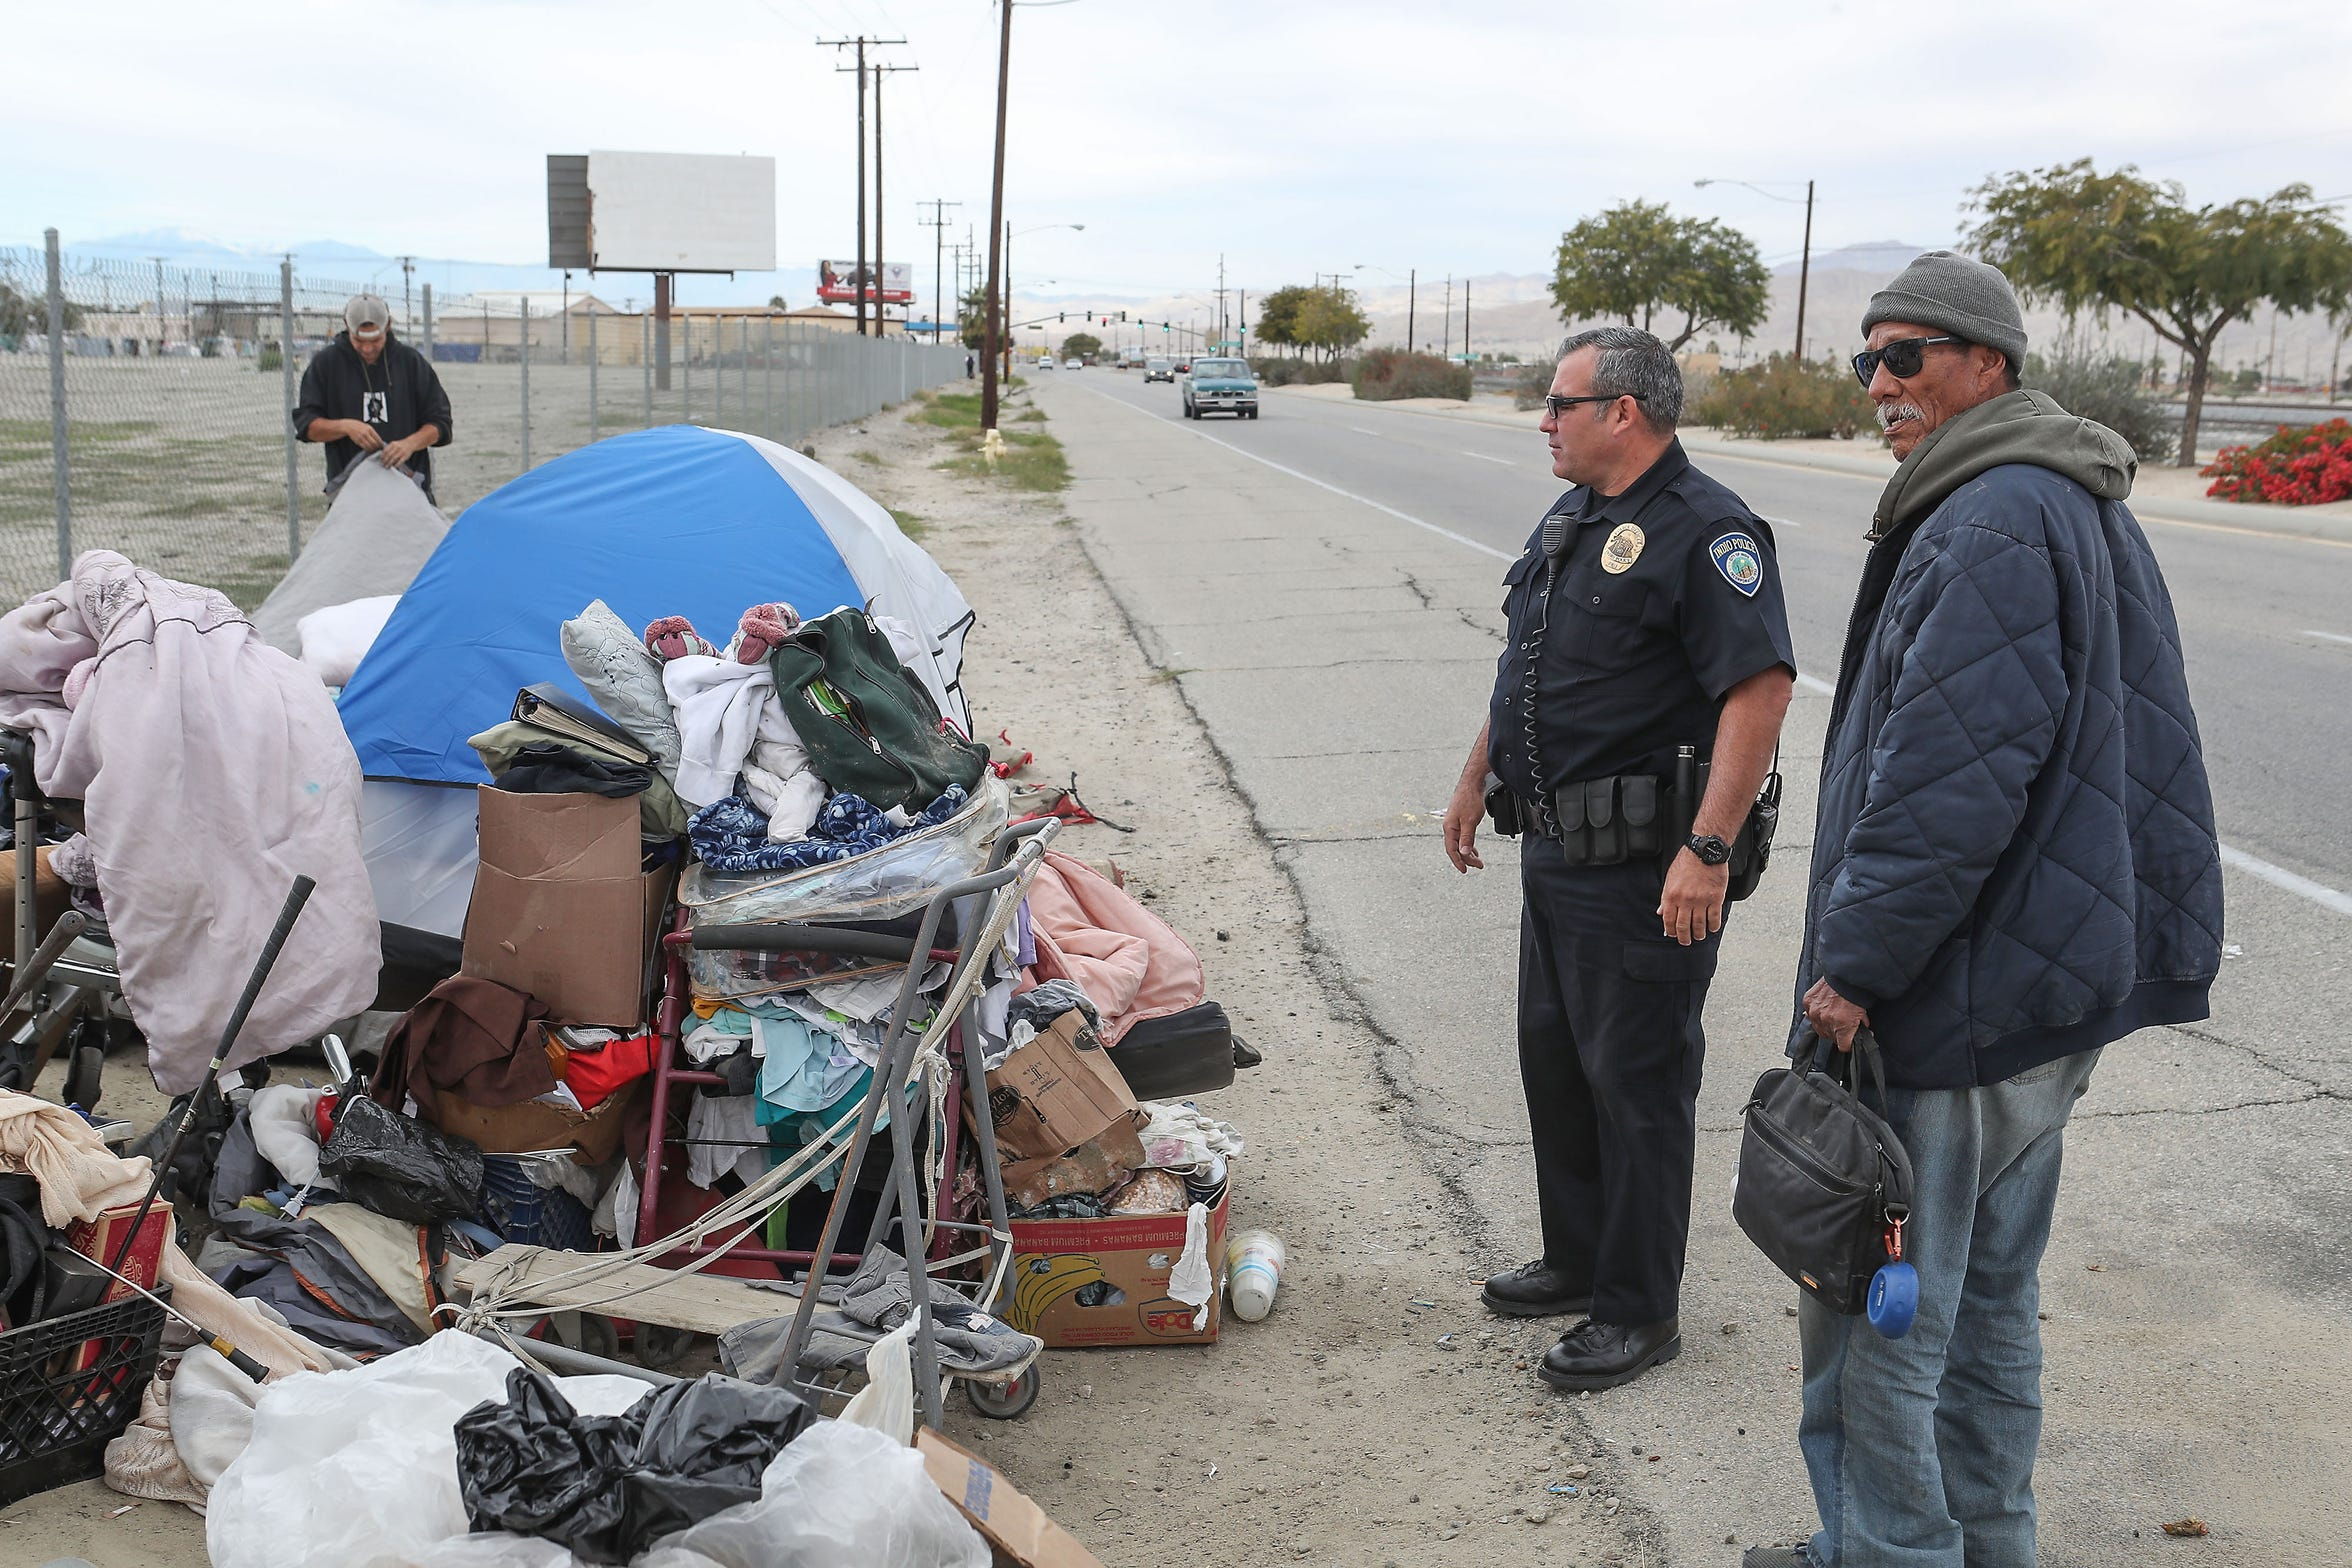 Indio Police Officer Brandon Haworth responds to a call of homeless encampments on the side of Highway 111, December 18, 2019.